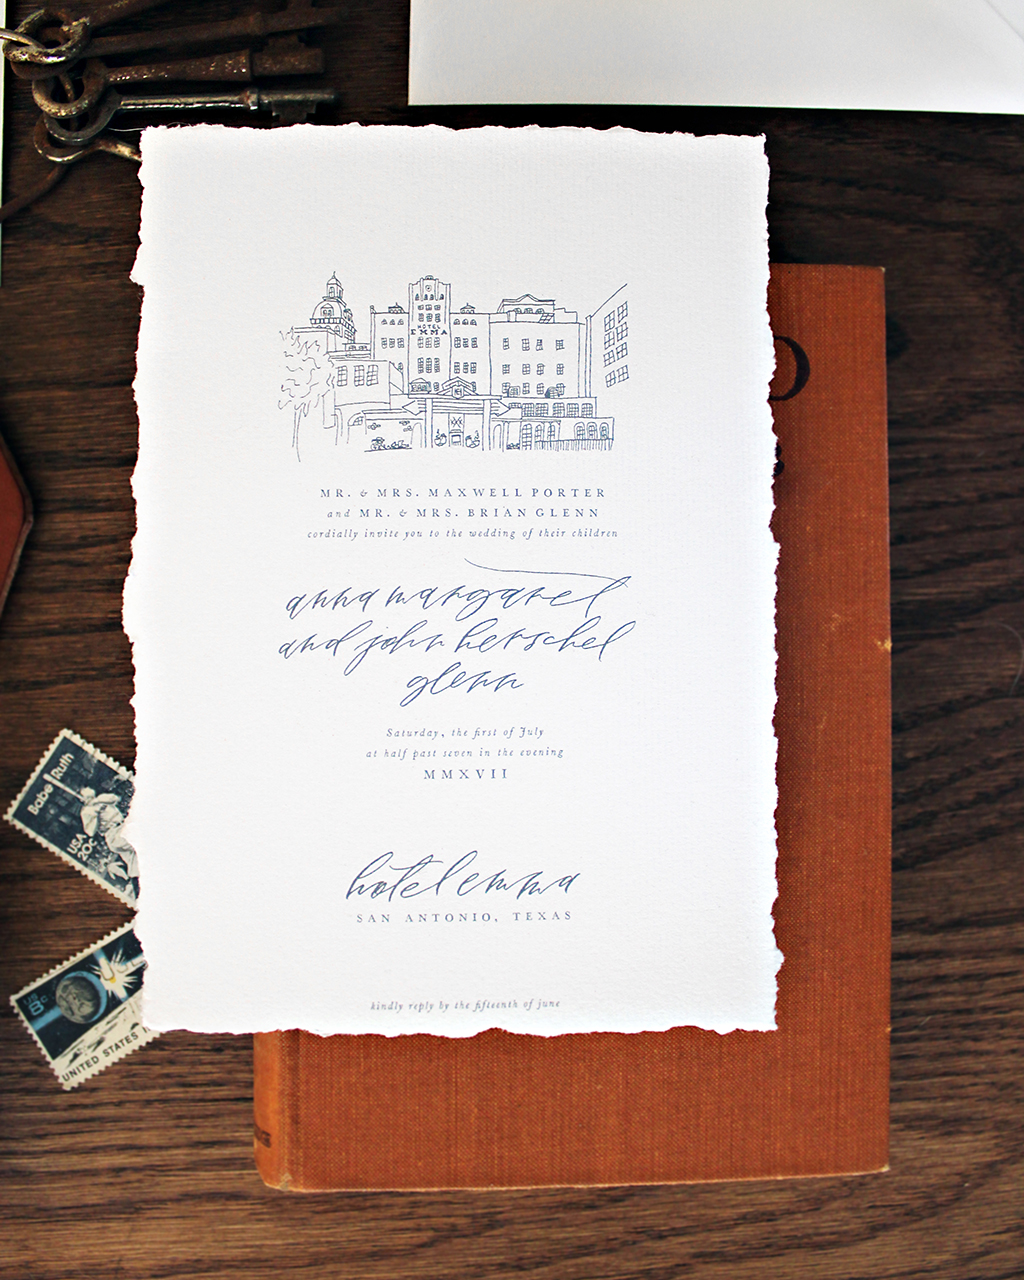 Elegant Monochromatic Calligraphy Wedding Invitations by Lazywood Lane